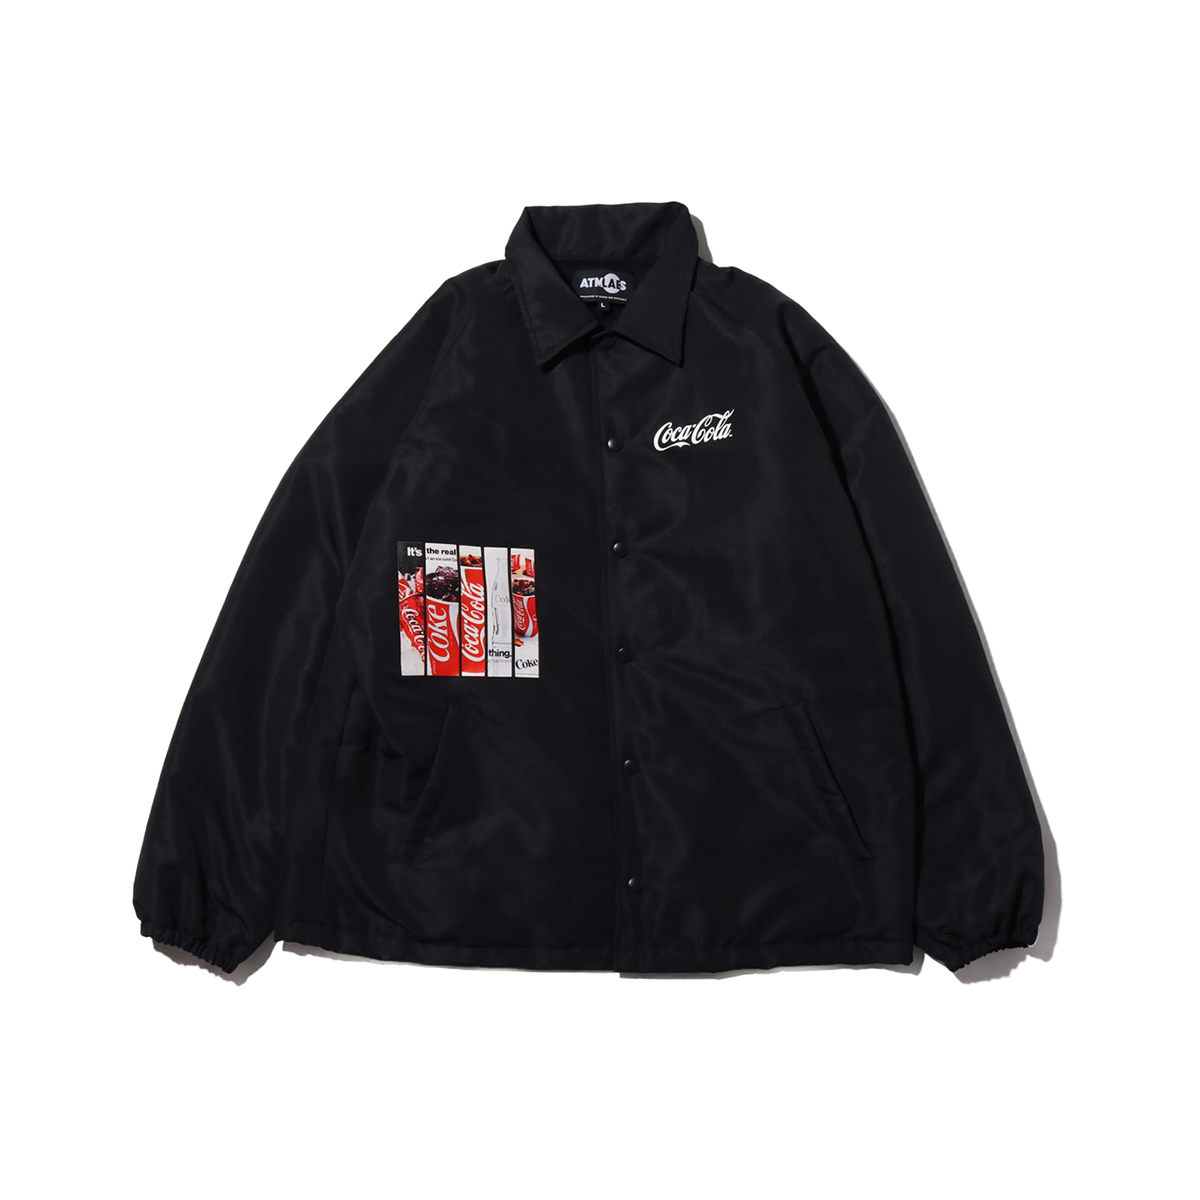 COCA-COLA by ATMOS LAB PANEL PHOTO COATH JACKET